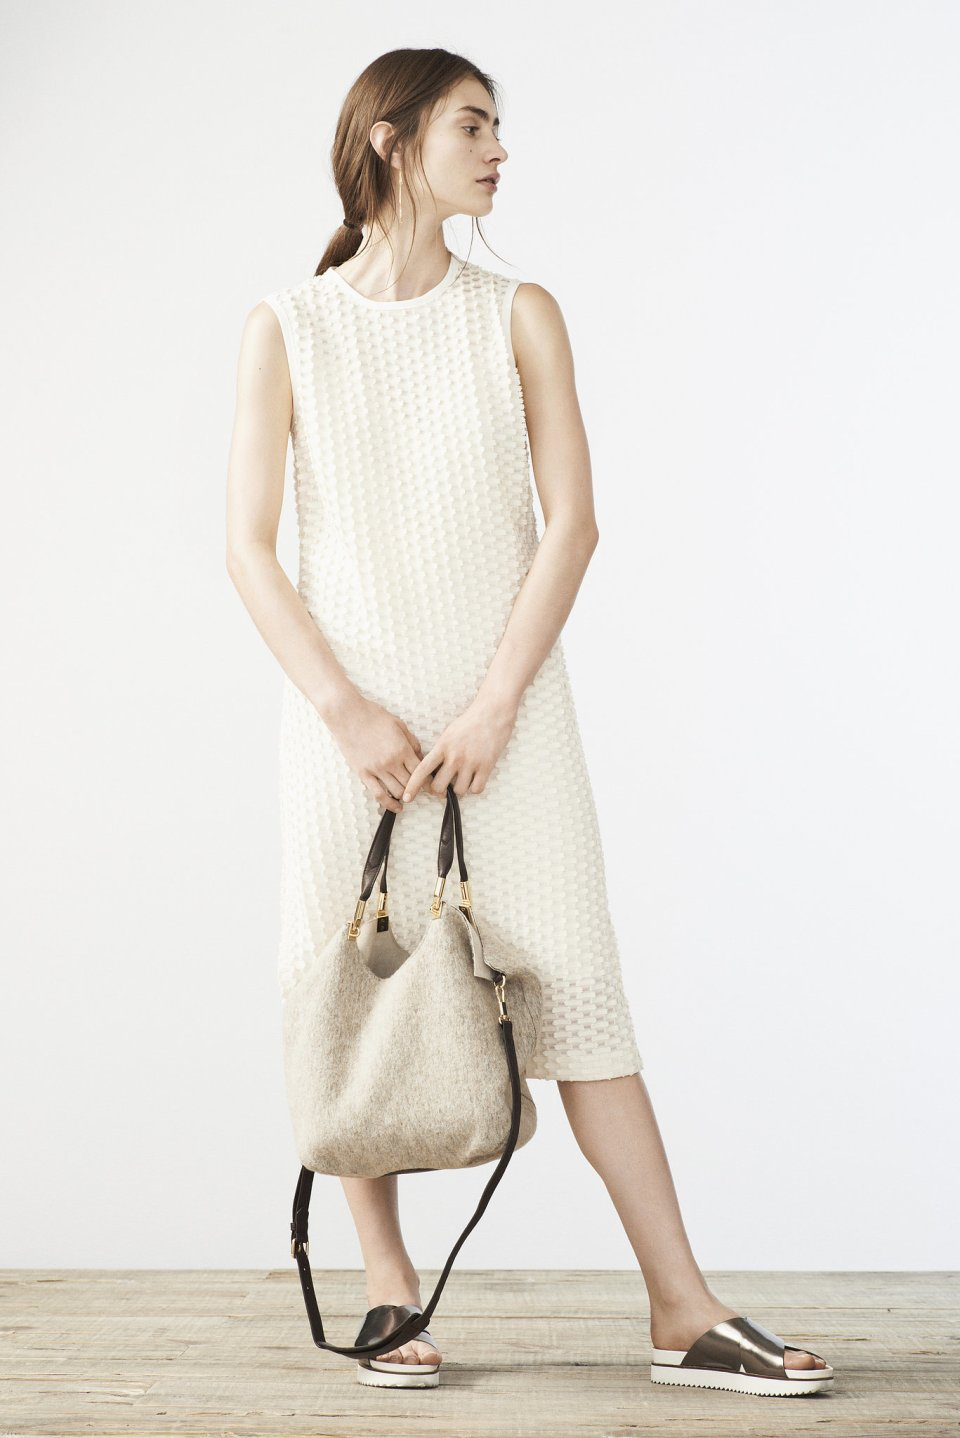 Elizabeth-James-Resort-2015-13